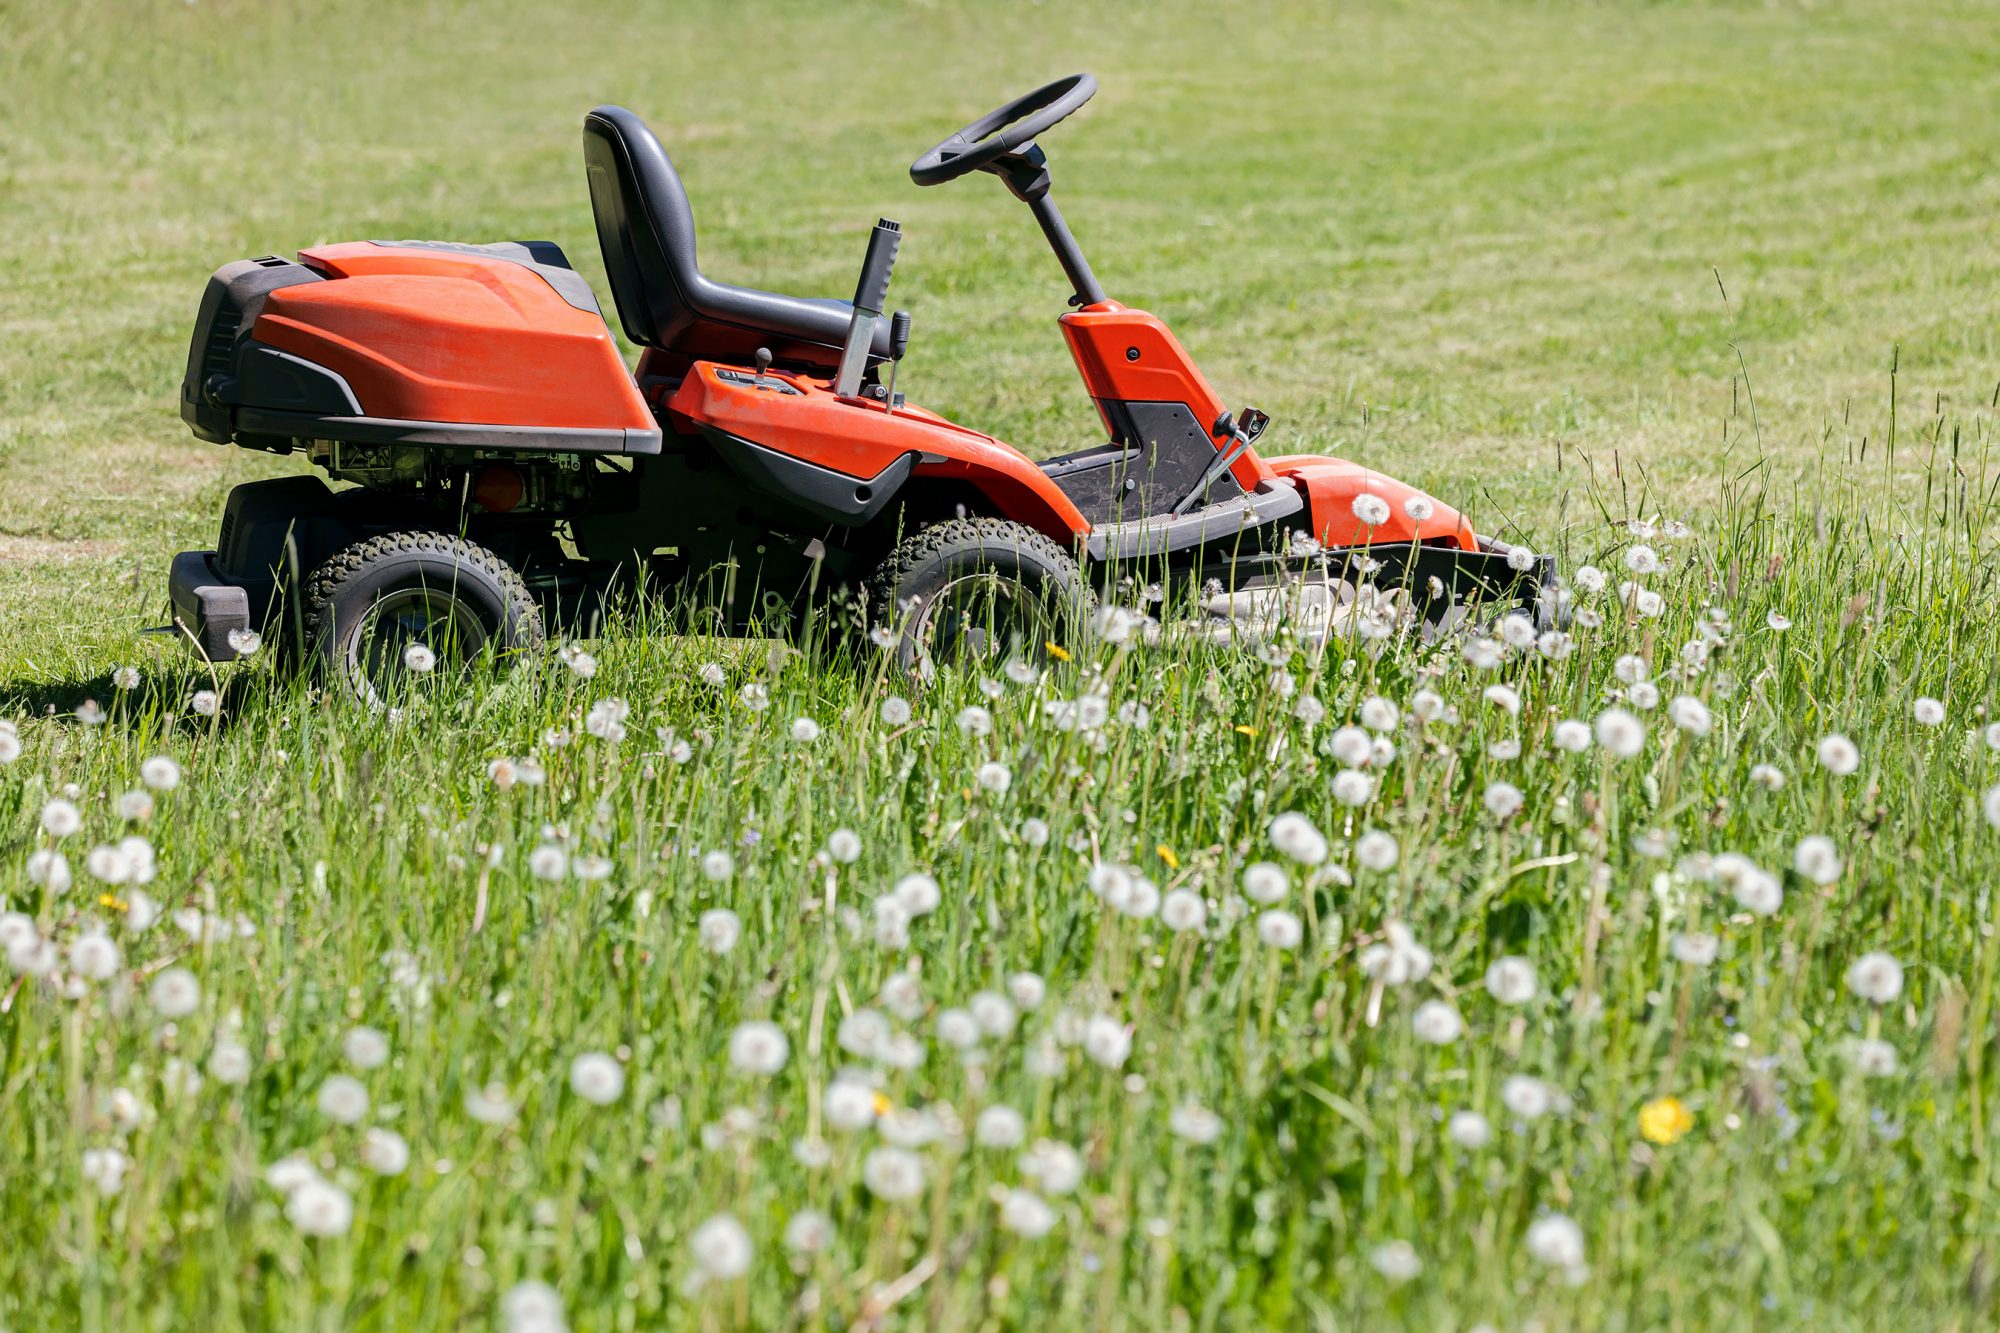 N.J. Man Dies After Lawn Mower Falls on Top of Him: Reports